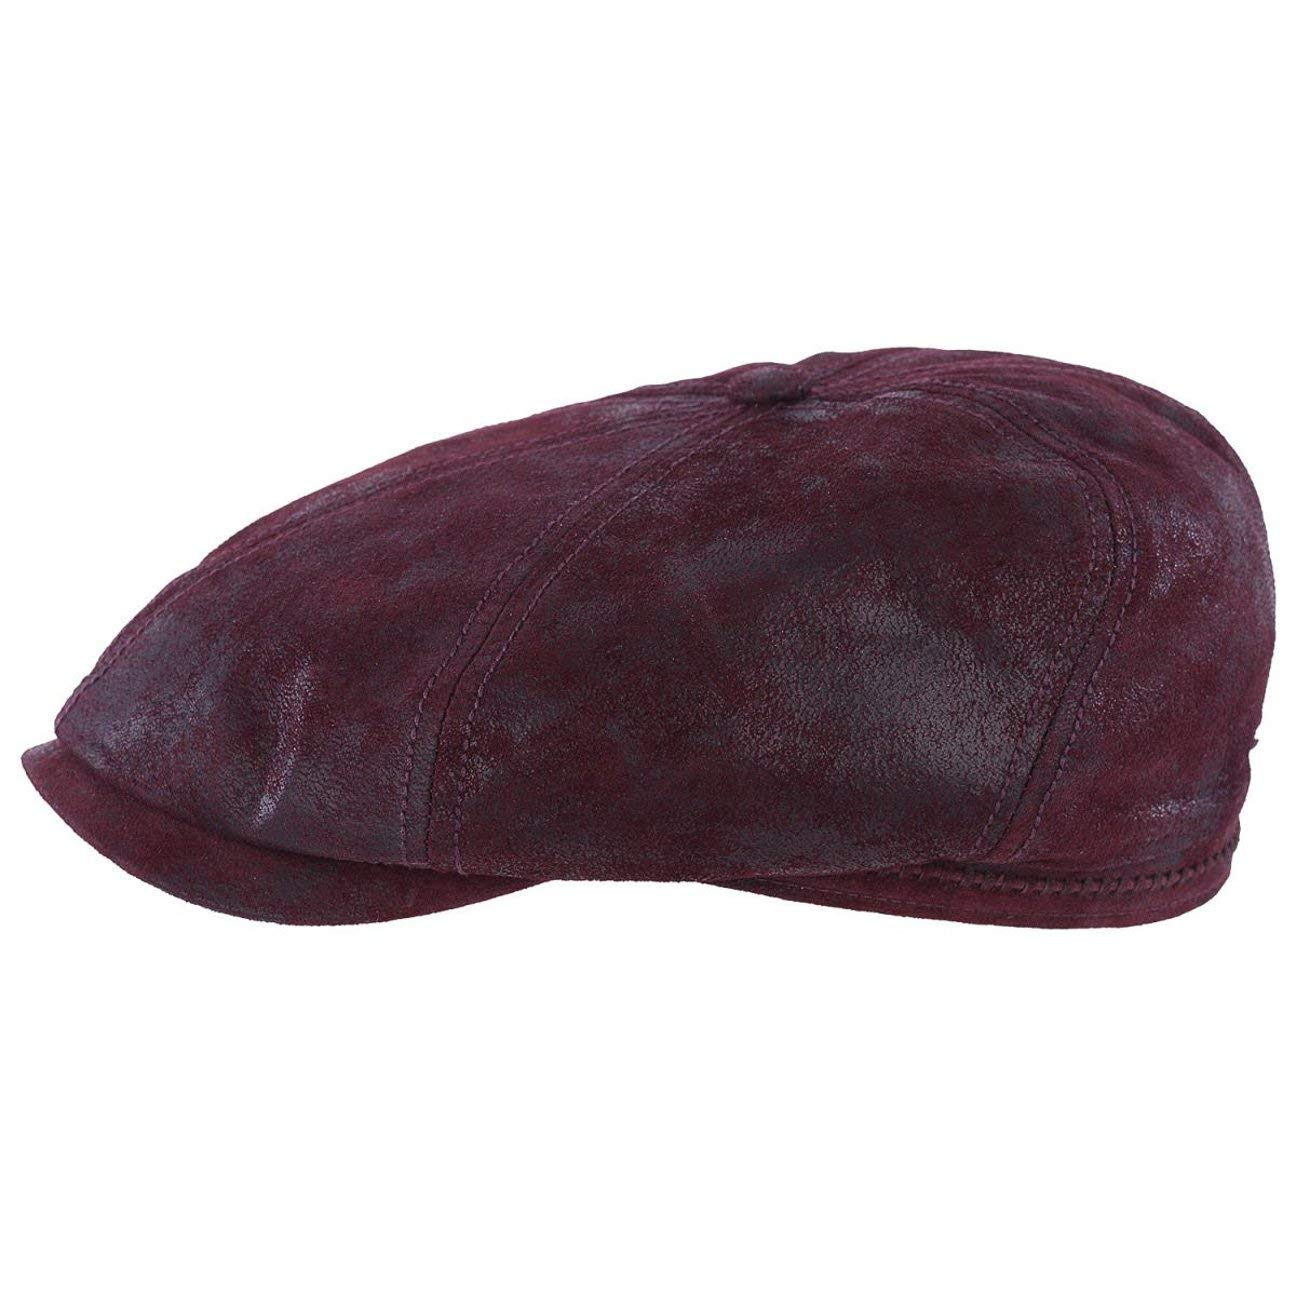 dbdb7e2a3bc2d Pigskin Leather Brooklin by Stetson Cotton Flat CAP - Red - Large   Amazon.co.uk  Clothing